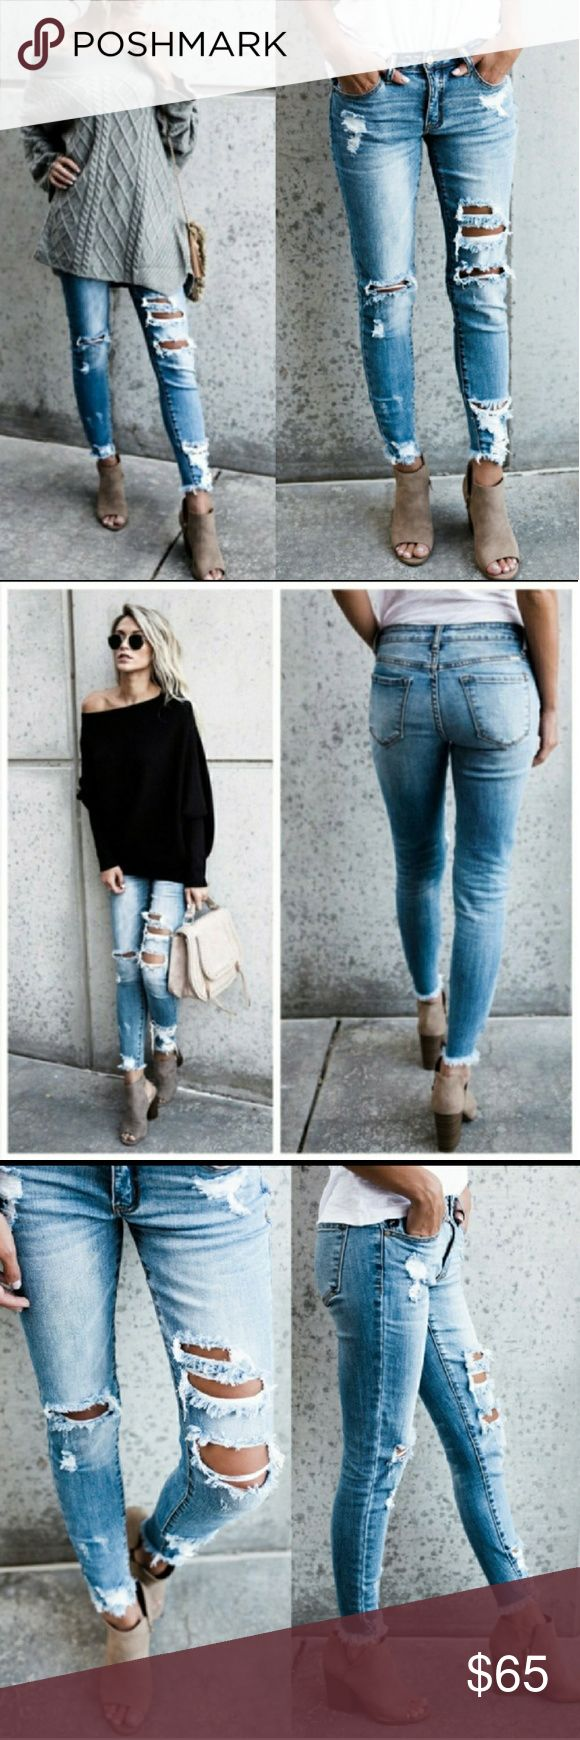 COMMING SOON!! KANCAN JEANS!!  Dont miss out on these awesome trendy skinny jeans!! They are light wash, stretchy, factory ripped and distressed These jeans are in demand and super cool looking!!!    98% cotton...2% spandex No trades Price is firm unless bundled!! Jeans Skinny